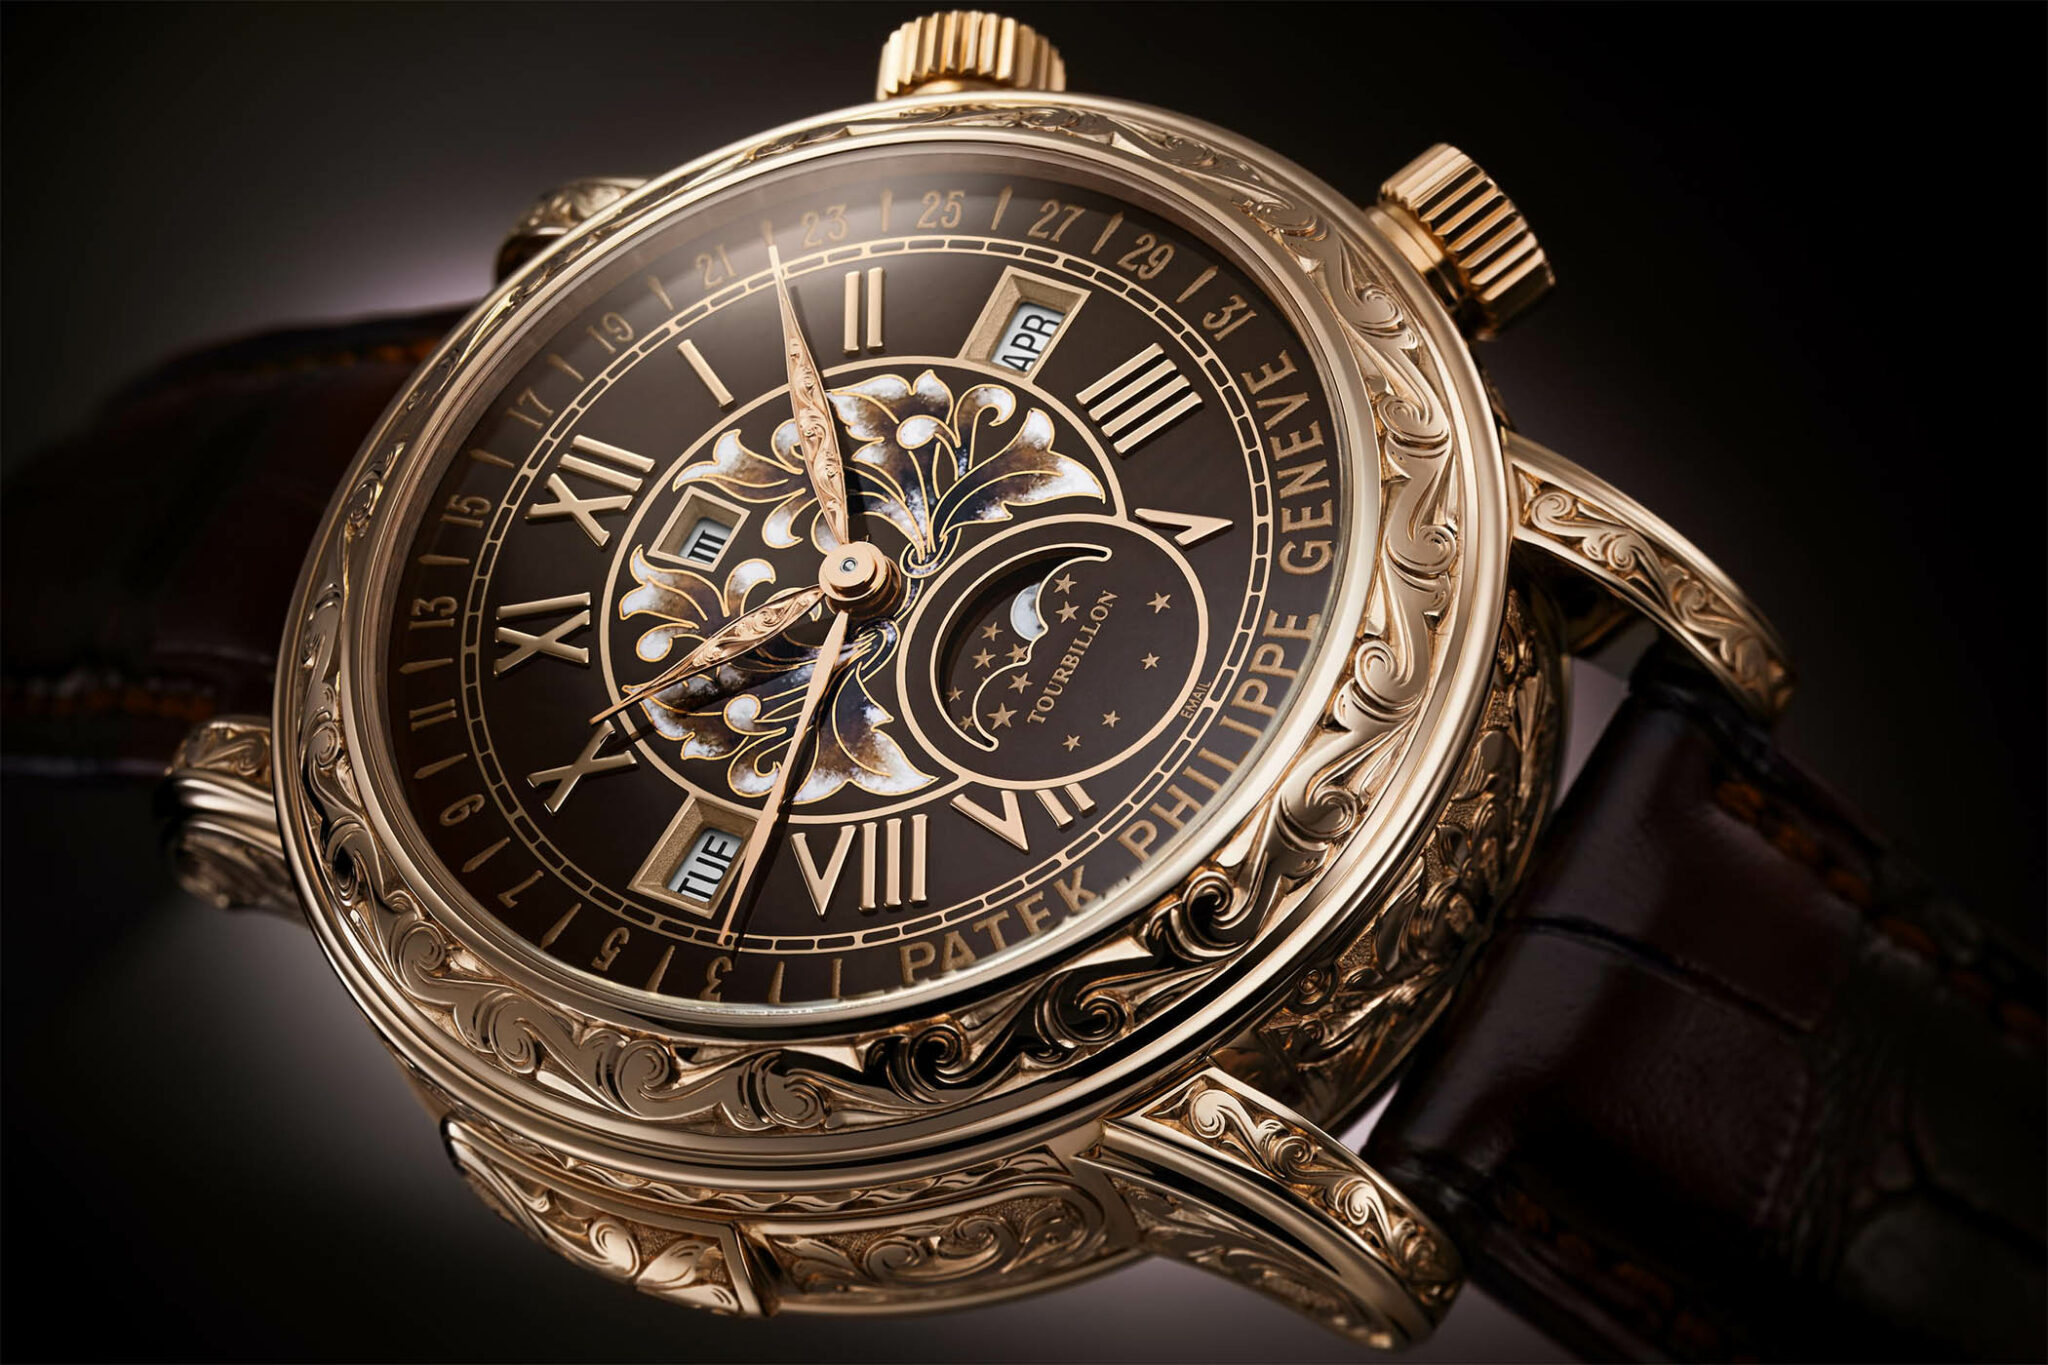 The Patek Philippe Minute Repeater Perfect Replica Watches